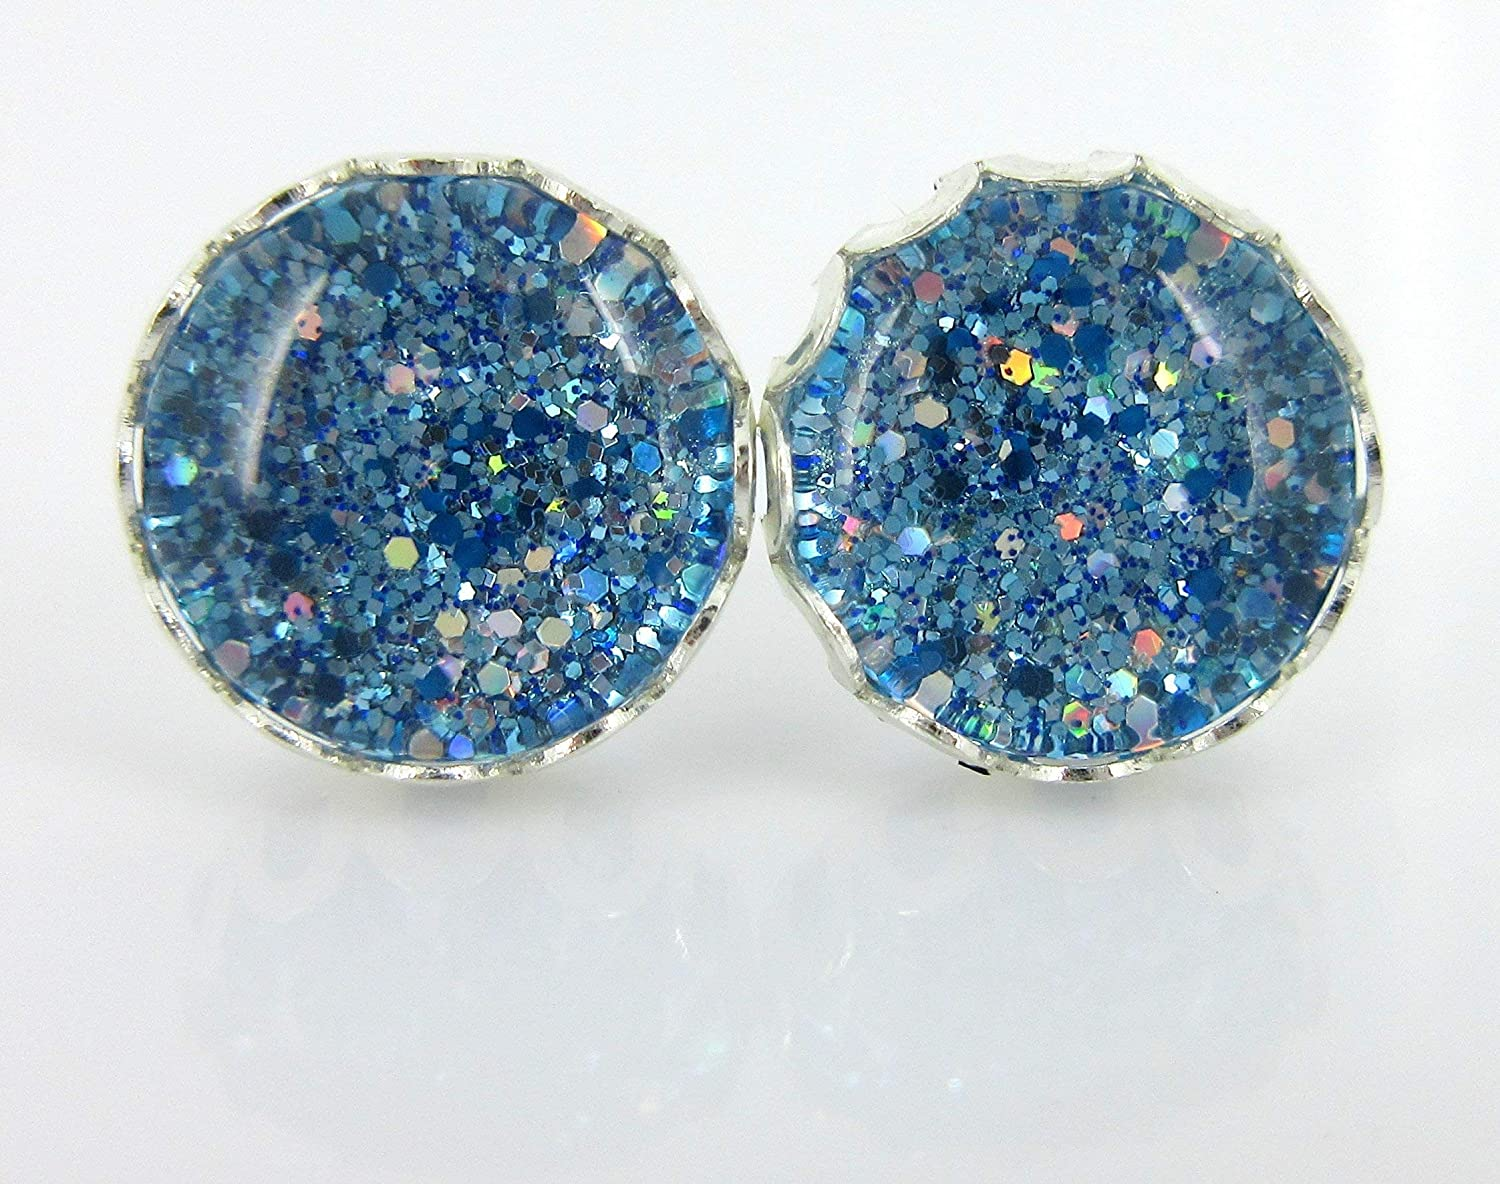 Silver-tone Blue and White Glitter Glass Stud Earrings Hand-painted 10mm